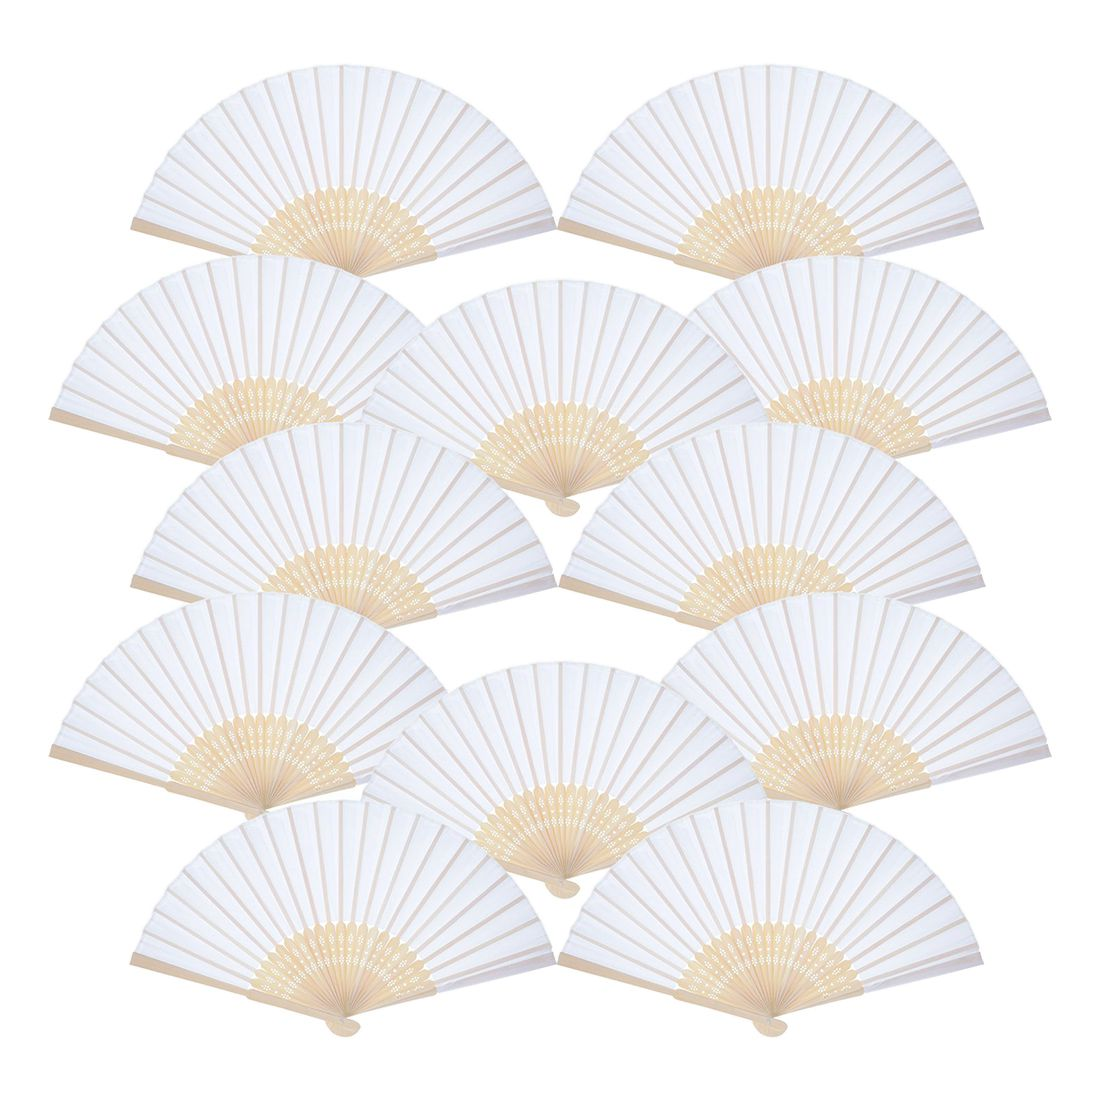 12 Pack Hand Held Fans White Paper fan Bamboo Folding Fans Handheld ...